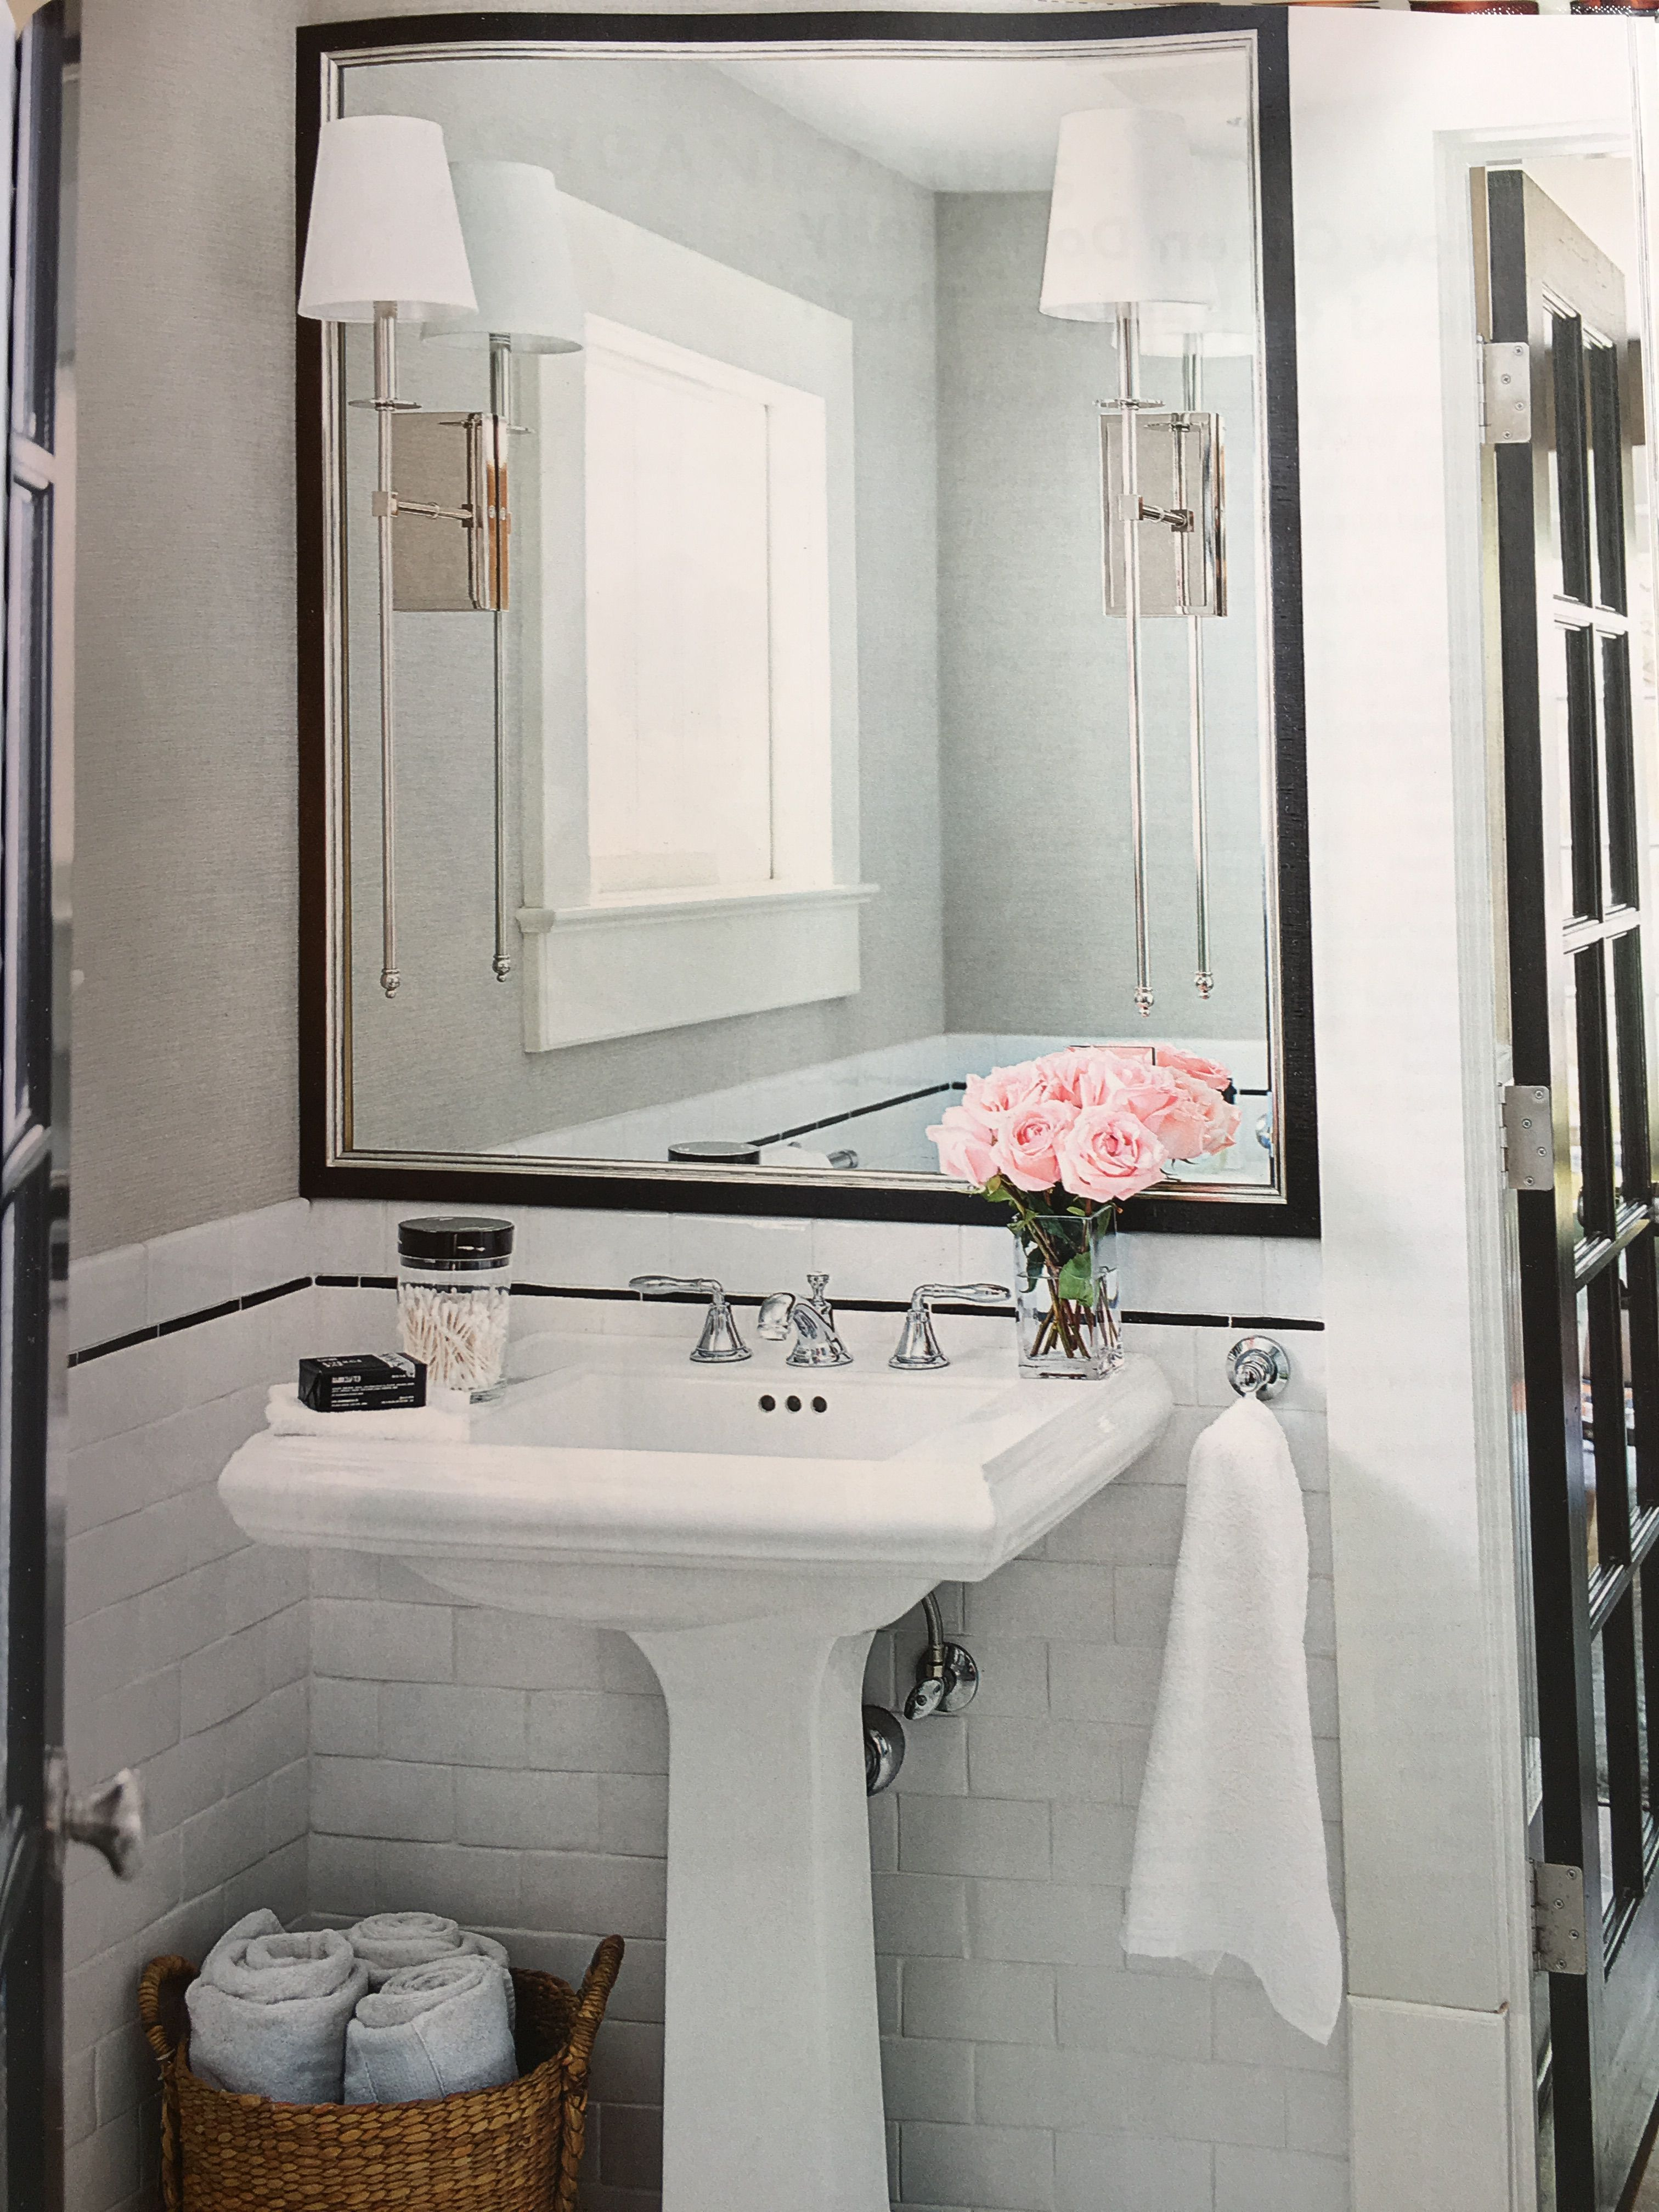 Classic Black White Chrome Bathroom With Elegant Features Oversized Square Mirror With Sconces Mounted On Top Subwa Marble Tile Floor Home Gym Mirrors Mirror [ 4032 x 3024 Pixel ]